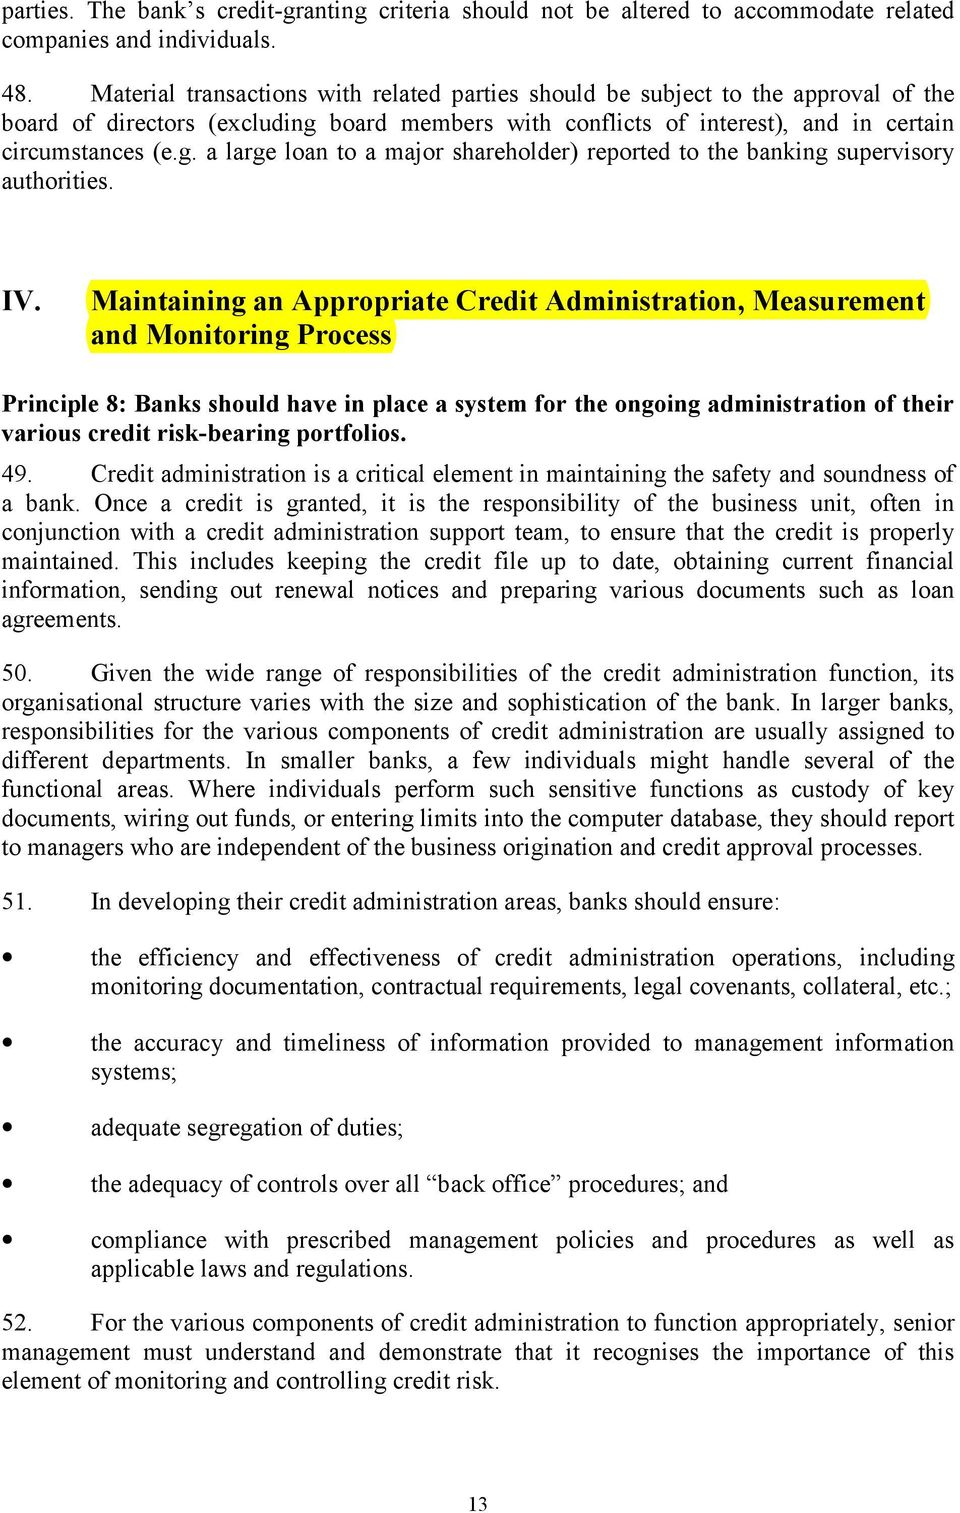 IV. Maintaining an Appropriate Credit Administration, Measurement and Monitoring Process Principle 8: Banks should have in place a system for the ongoing administration of their various credit